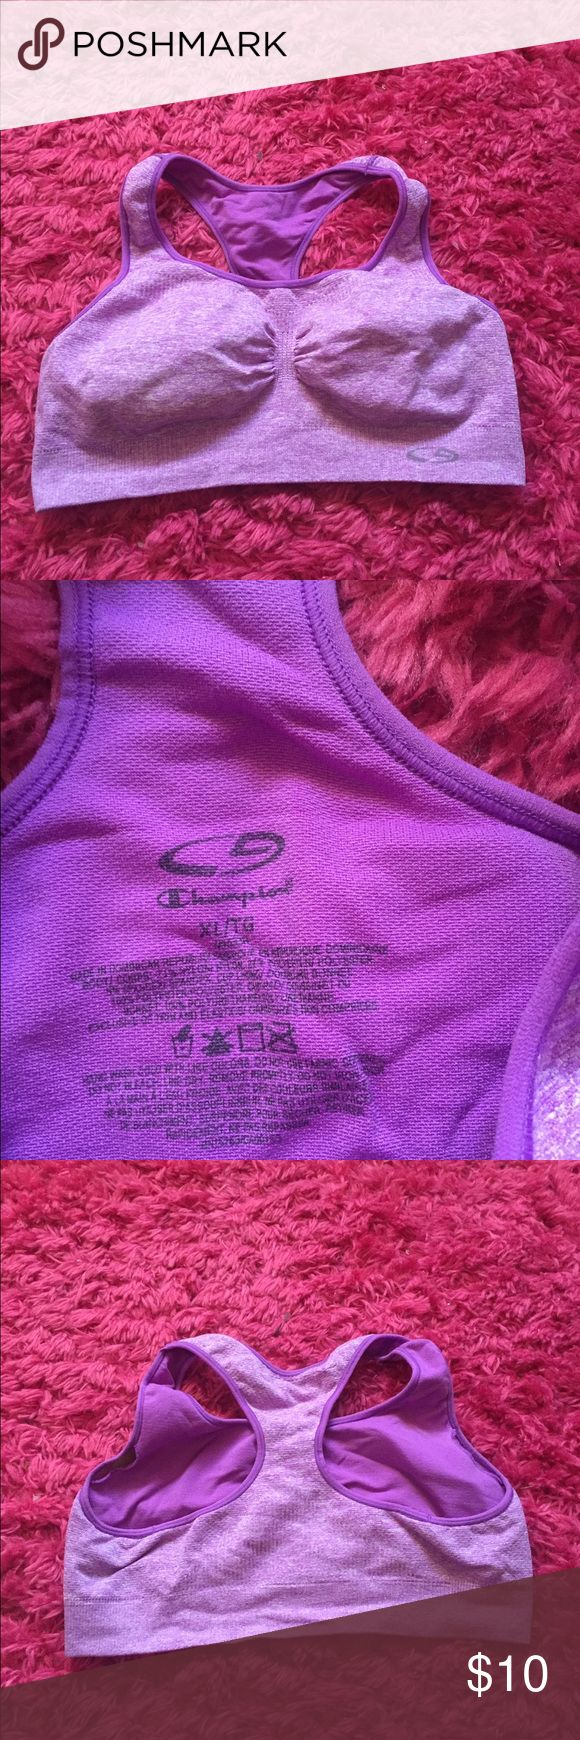 Champion Sports Bra! ☺️ I've only worn this a handful of times. It does have padding in it! Got it from target. Champion Intimates & Sleepwear Bras